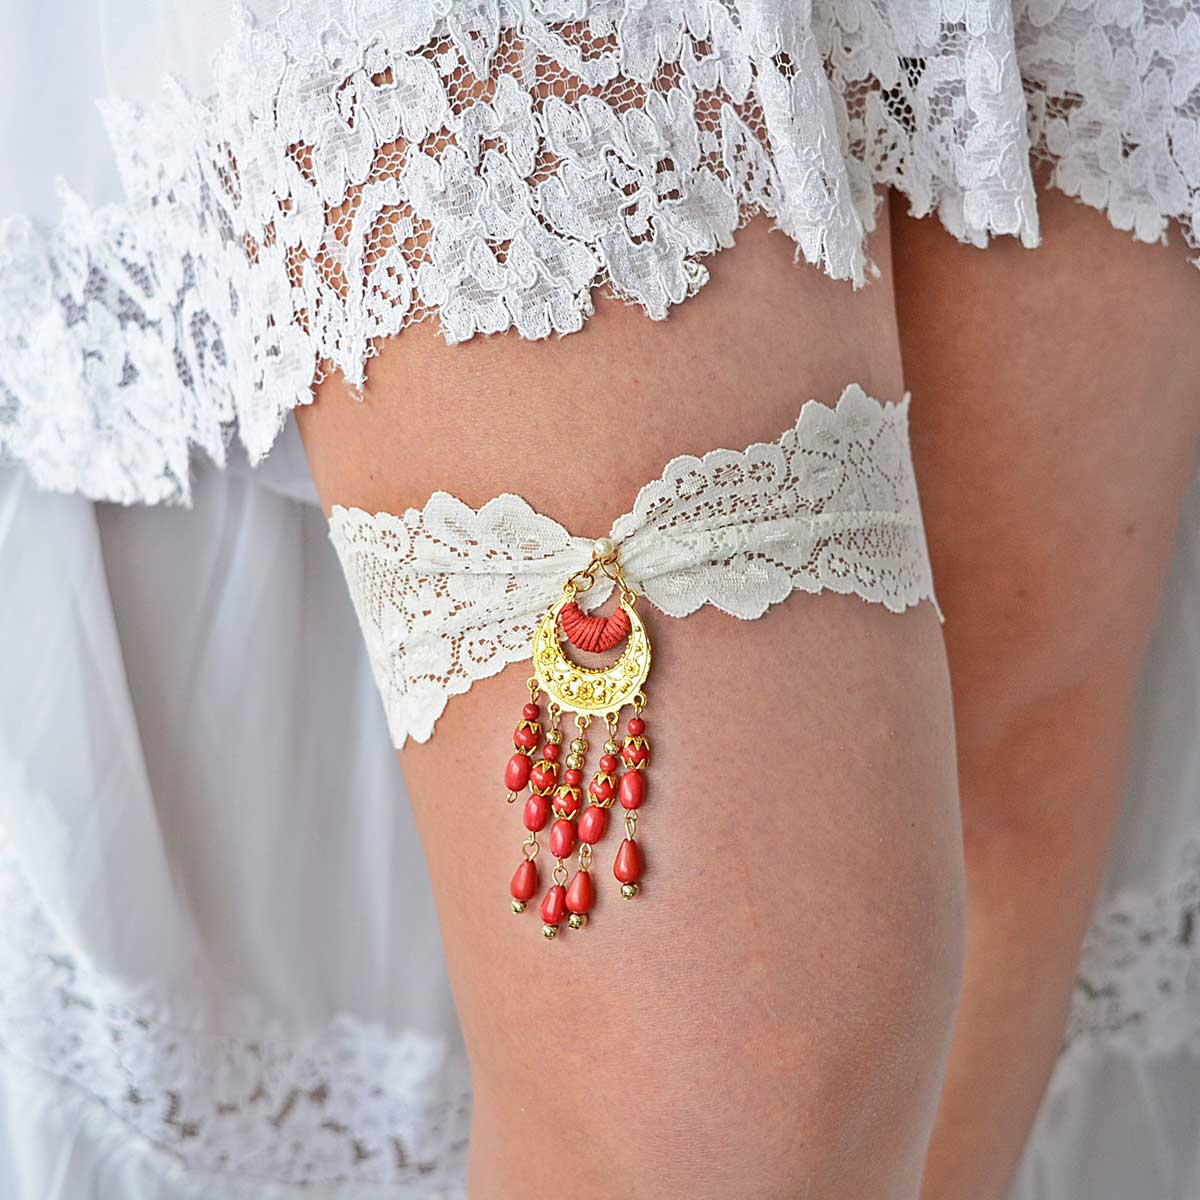 Ivory Wedding Garter Belt With Gold & Red Rhinestone